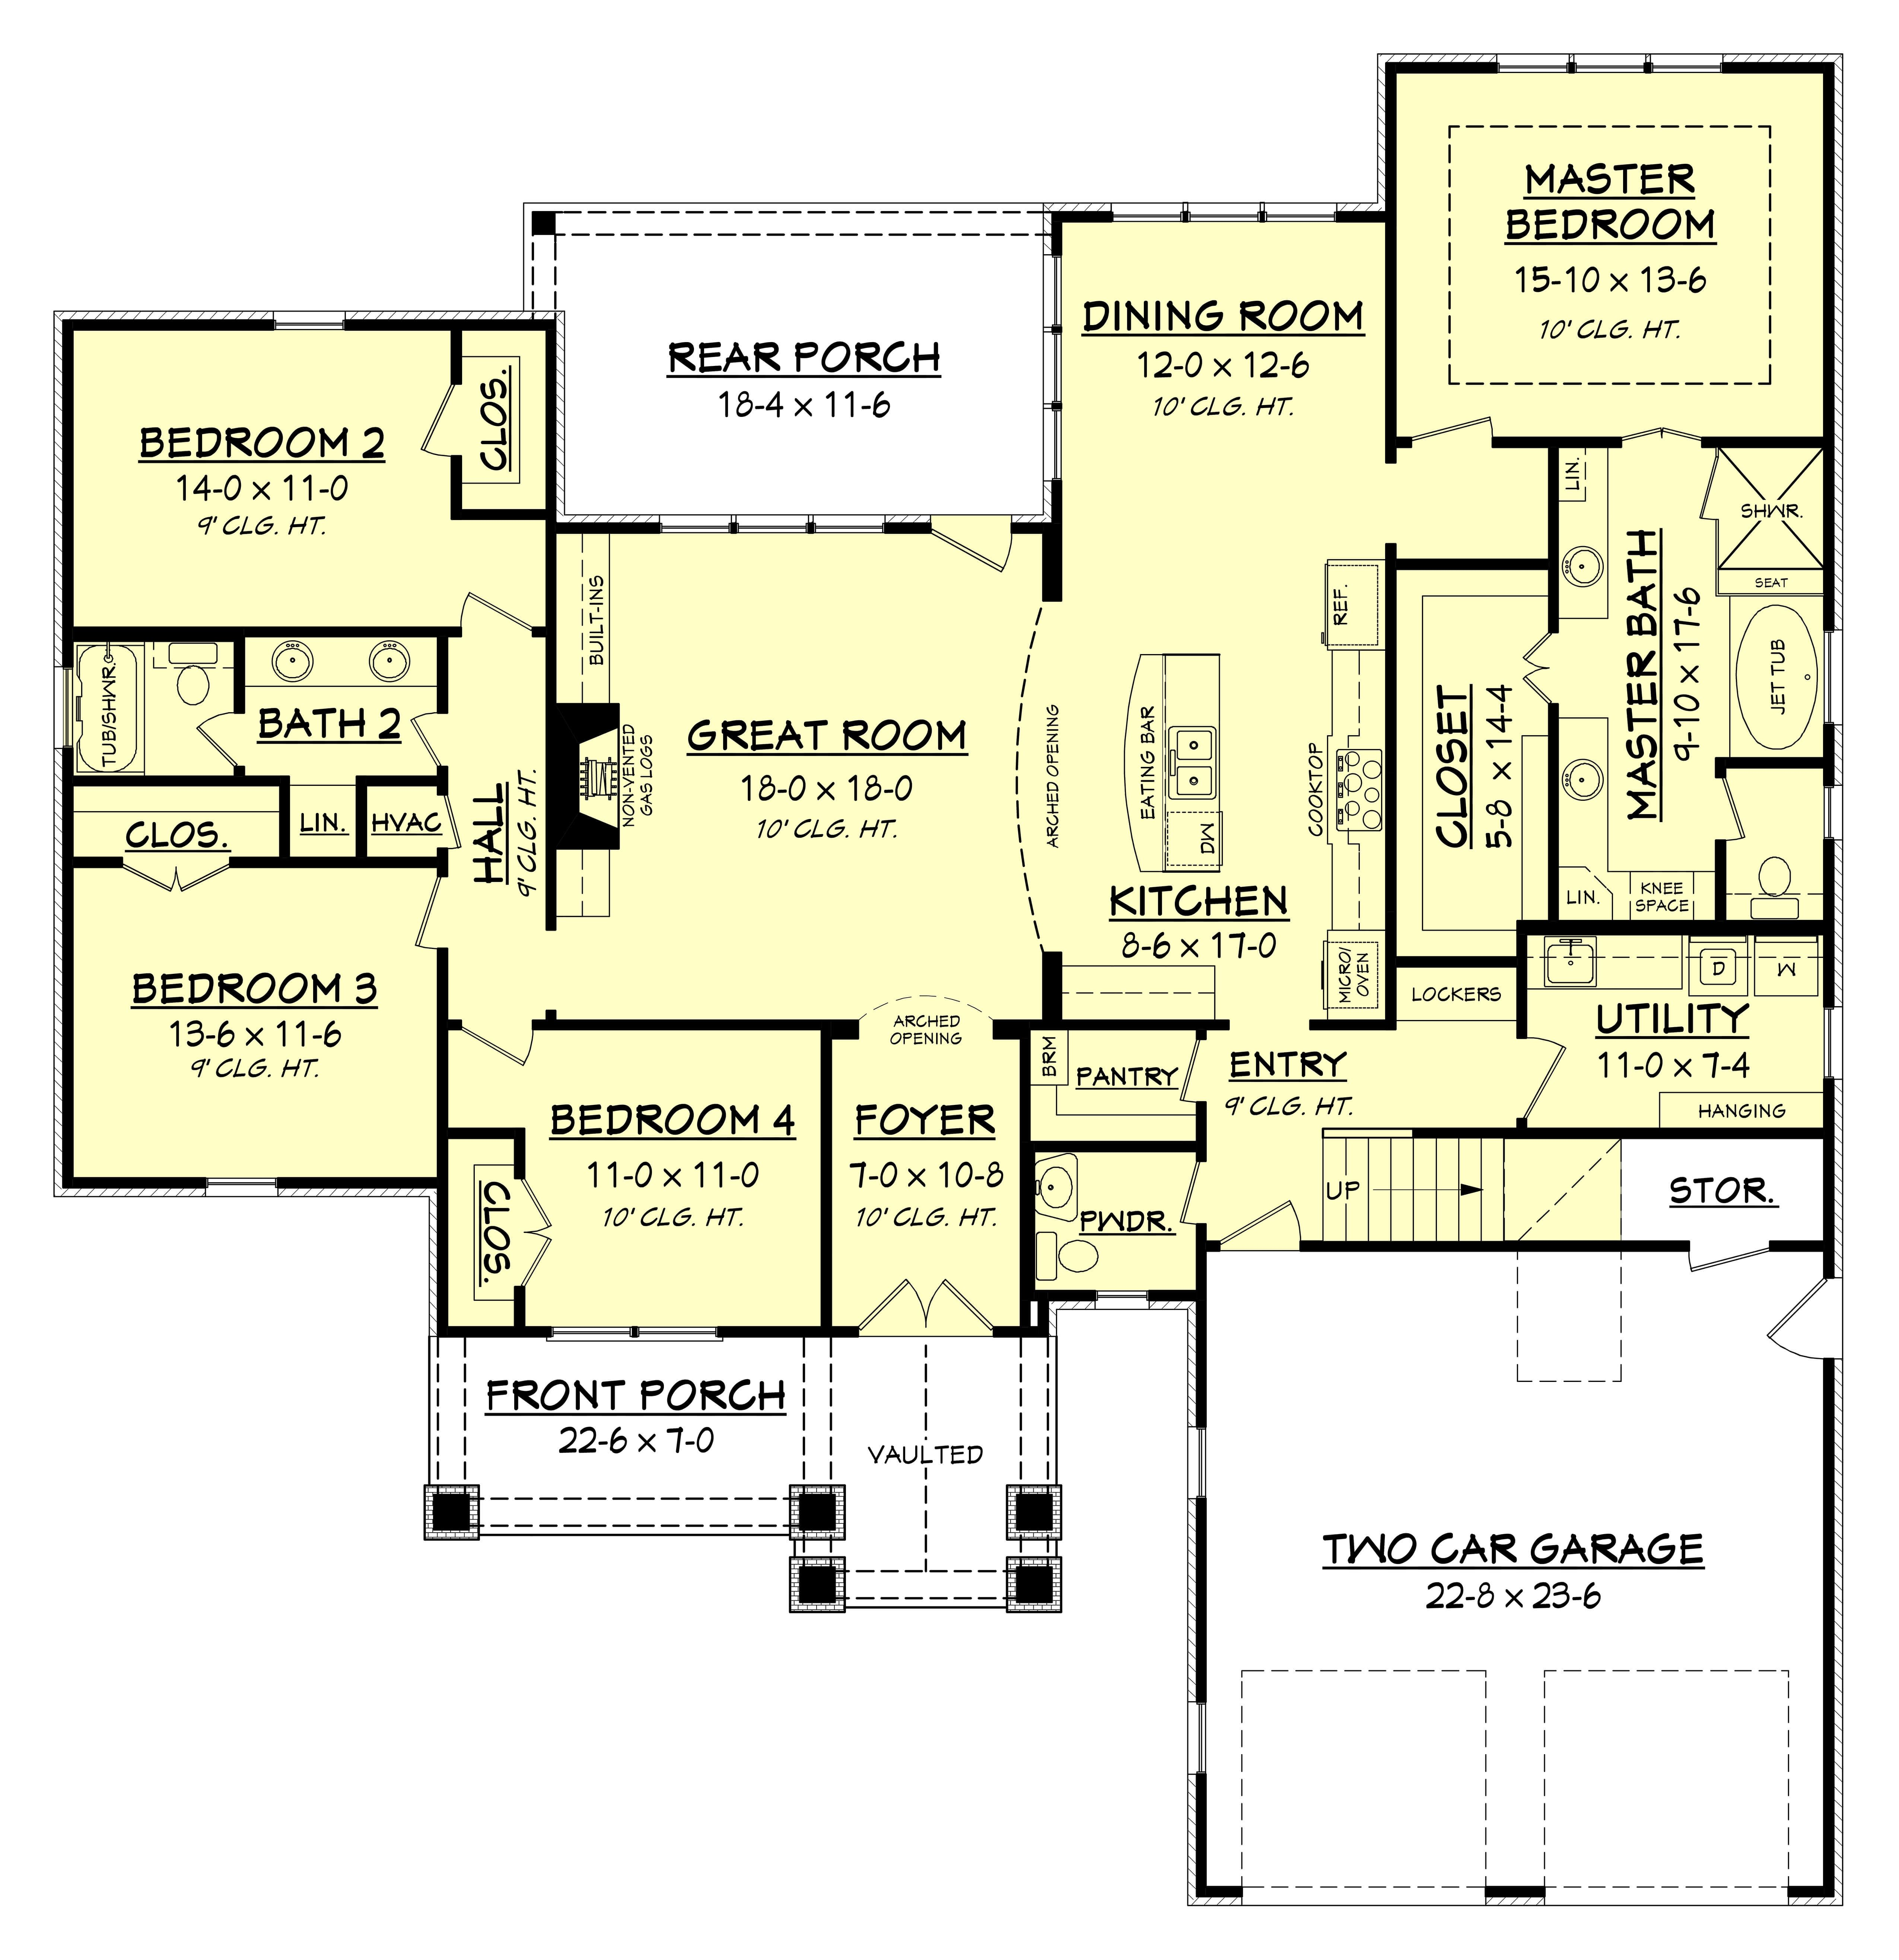 142-1173: Floor Plan Main Level | House Plans in 2019 ... on house plans with bedrooms, house plans with garage, house plans with decks, house plans with walk-in closets, house plans with dining room, house plans with glass walls, house plans with patio doors, house plans with vaulted ceilings, house plans with luxury kitchens, house plans with fireplaces, house plans with french doors,